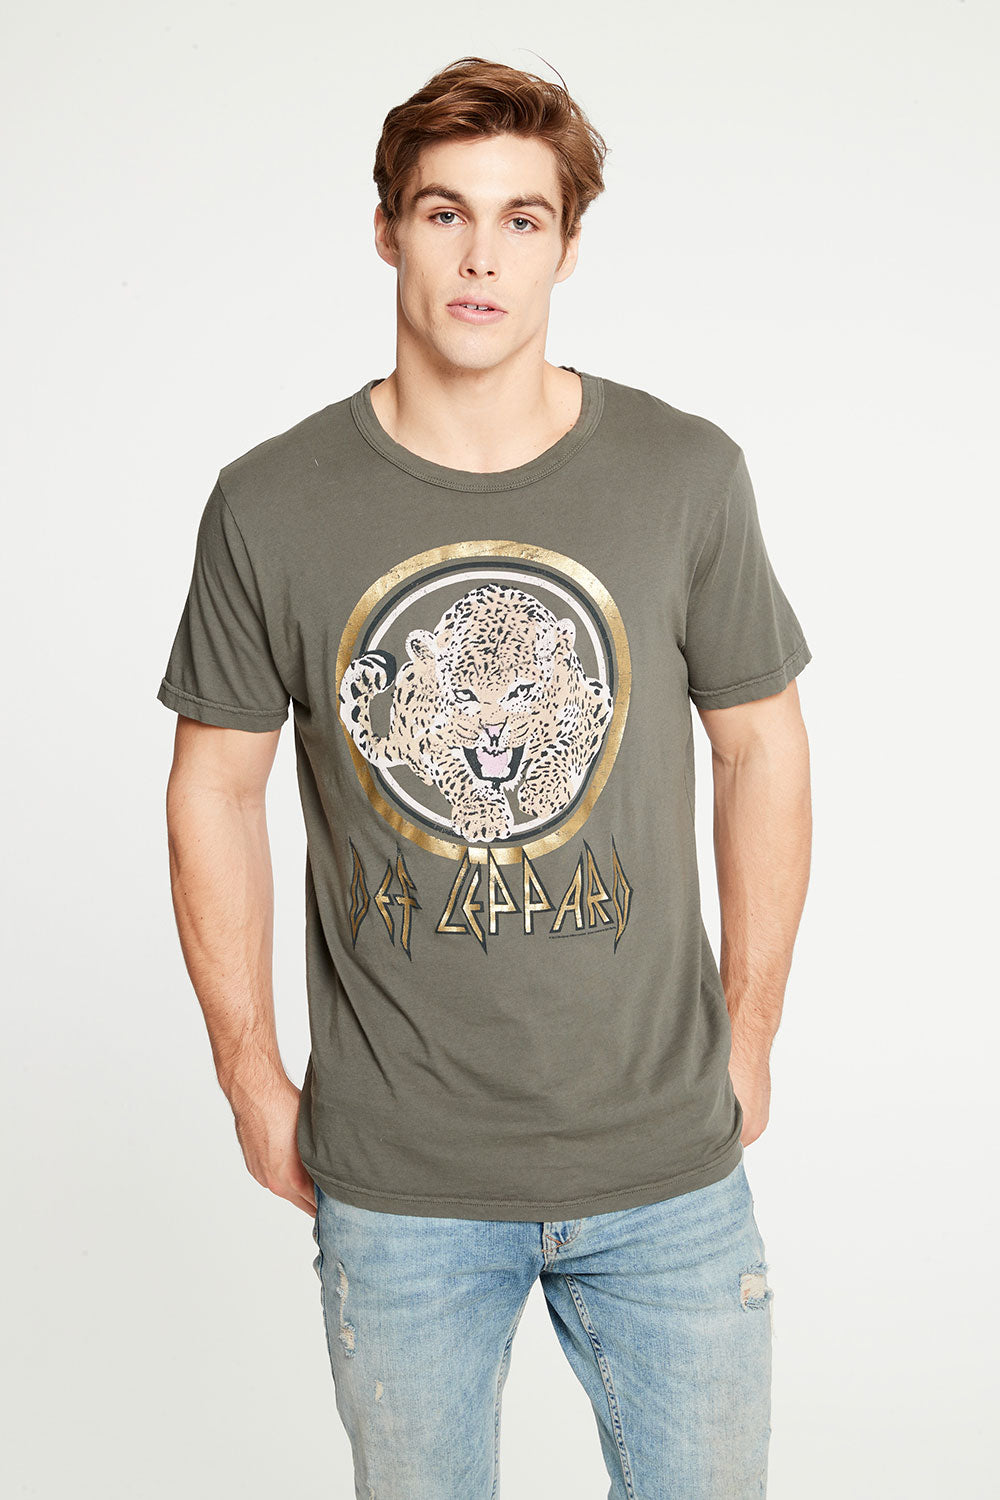 Def Leppard - Animal MENS chaserbrand4.myshopify.com